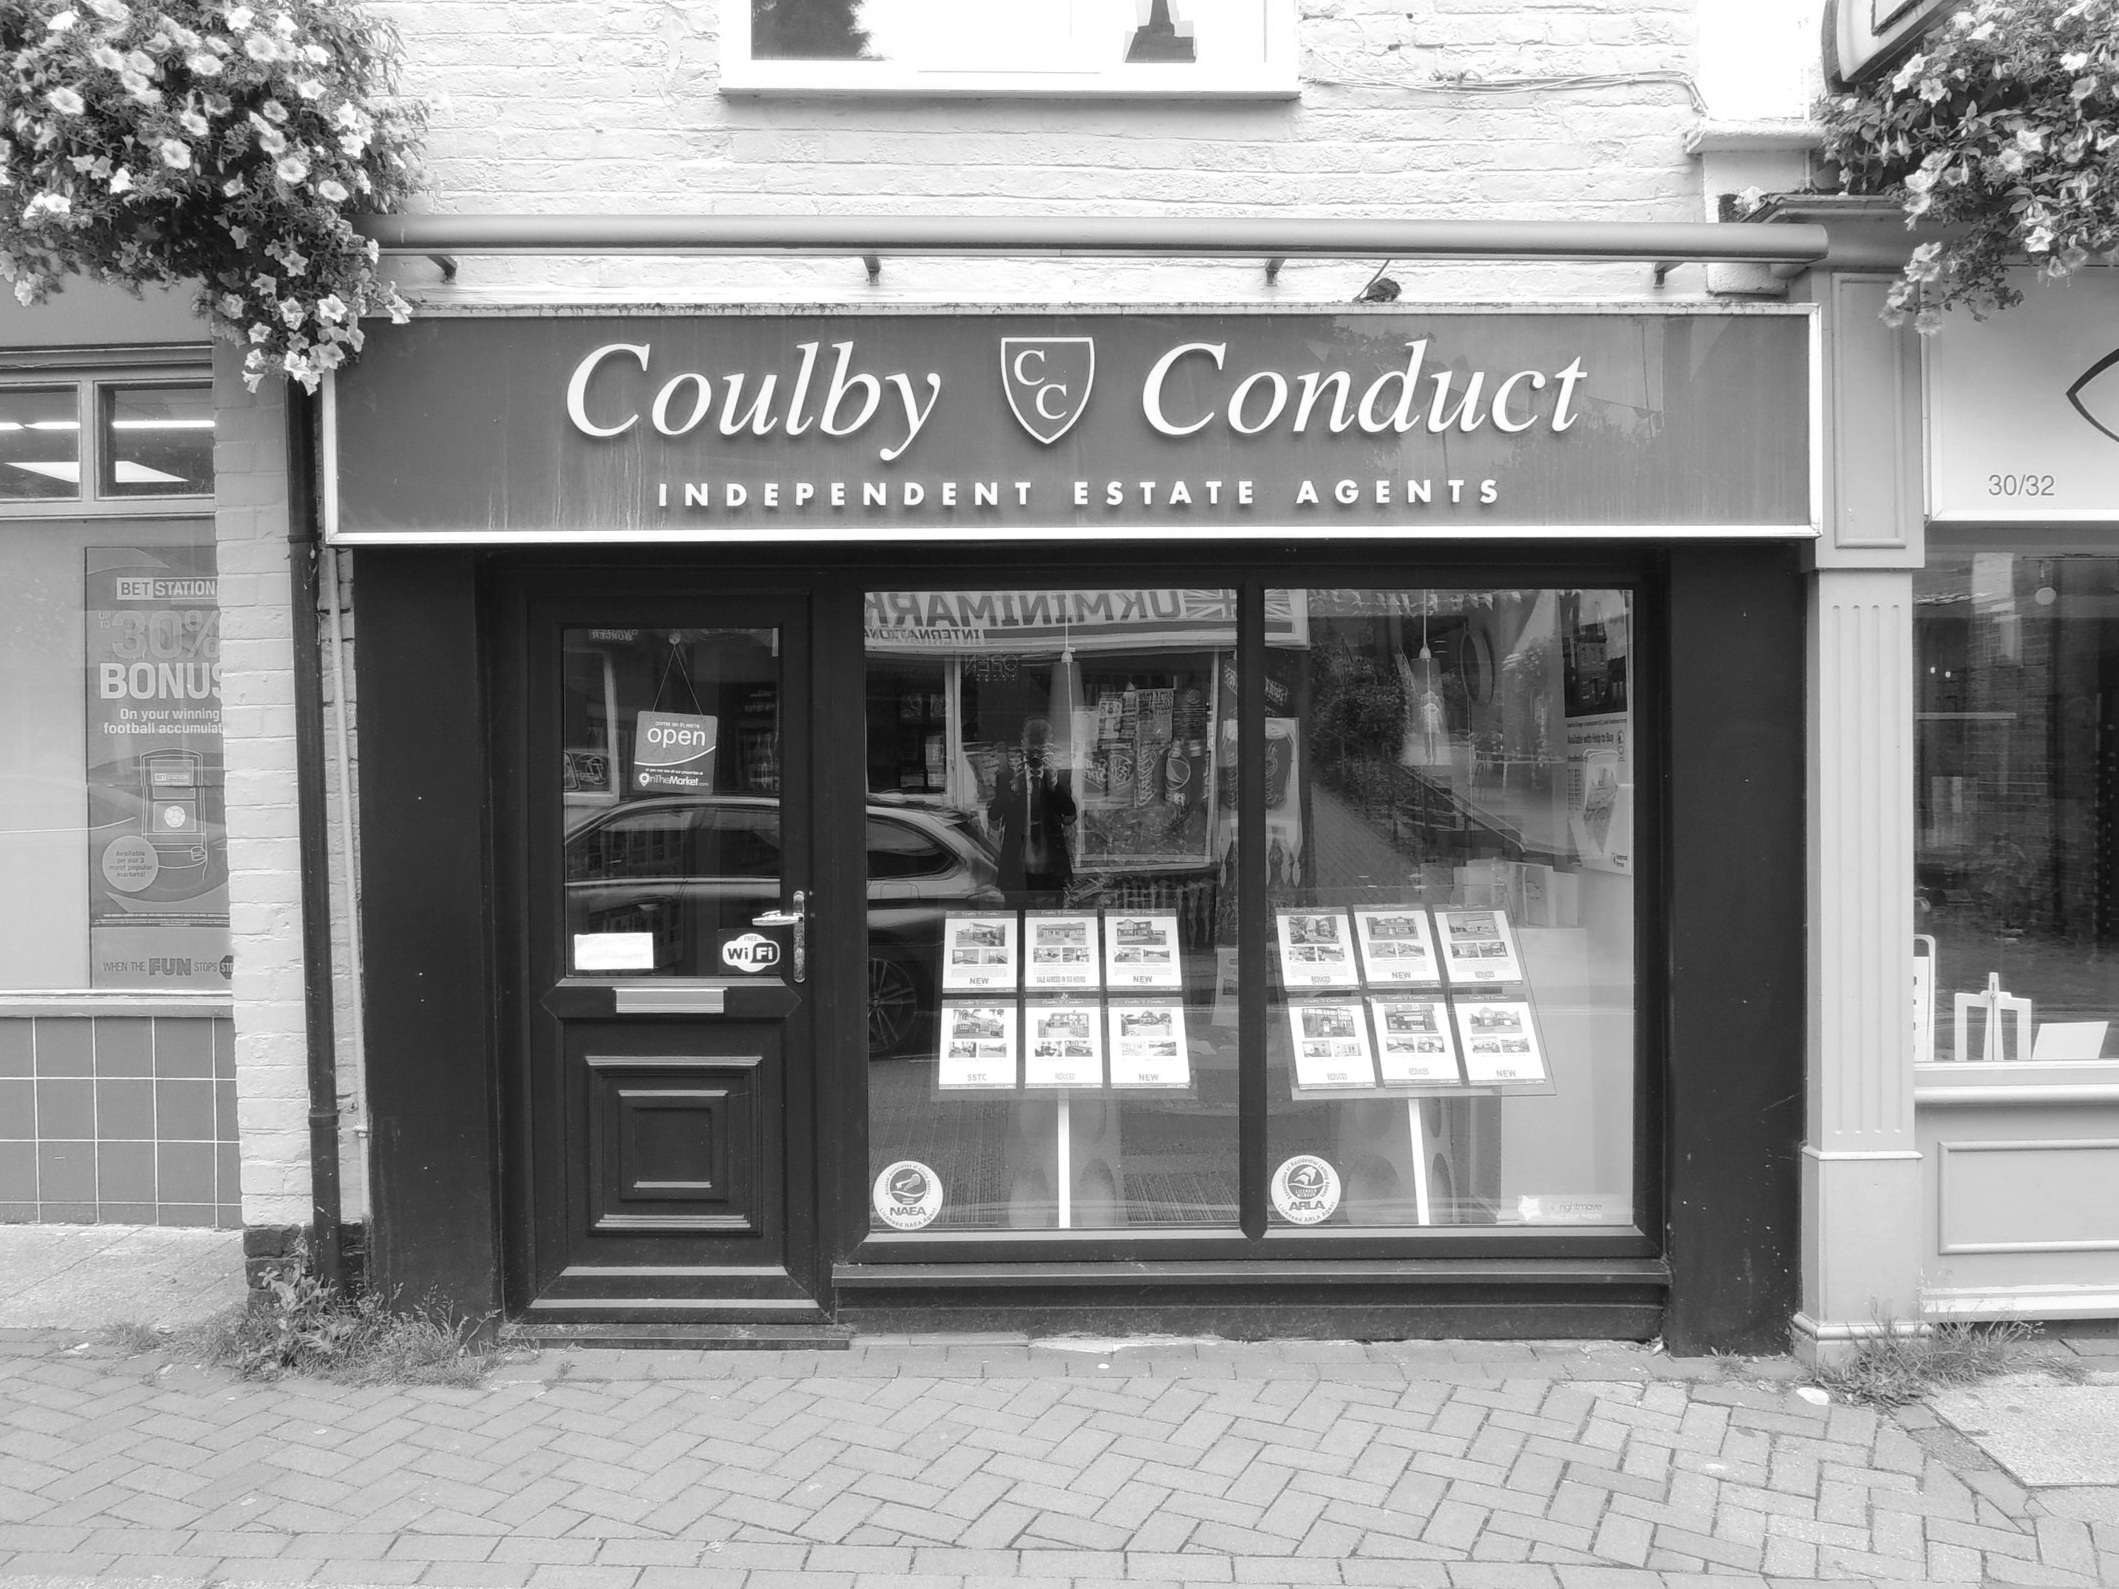 Middlewich Office - 34 Wheelock StreetMiddlewichCheshireCW10 9ABEmail: middlewich@coulbyconduct.co.ukPhone: 01606 832503